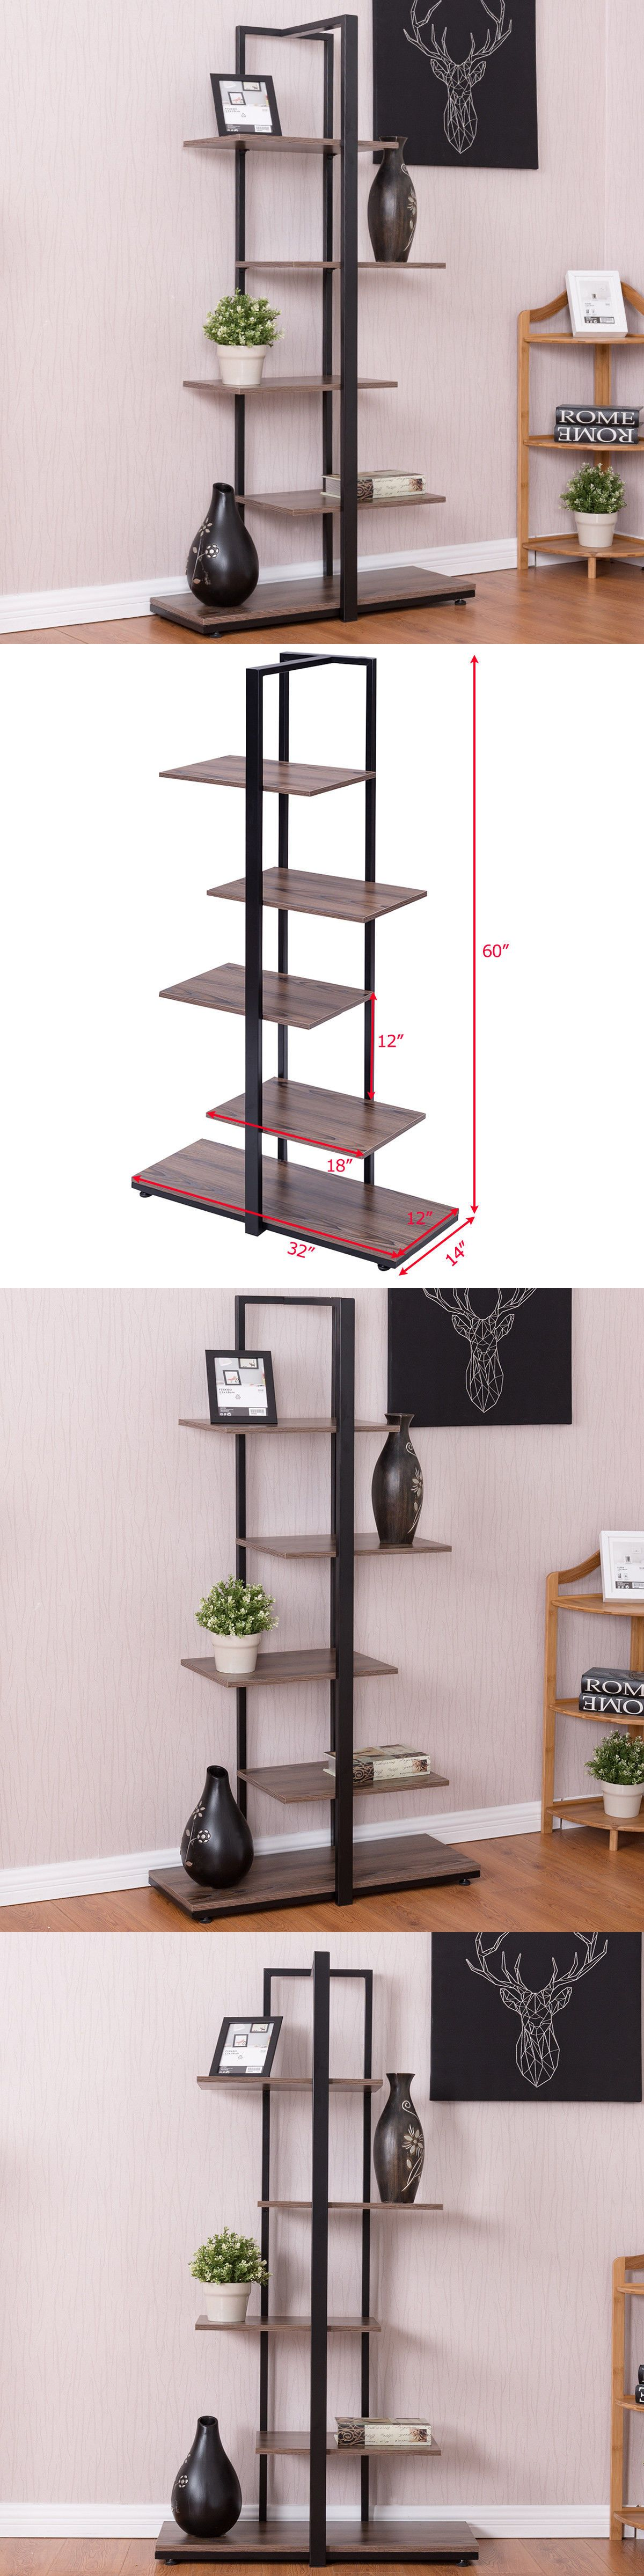 Bookcases 3199 Bookcase 60 Modern Open Concept Display Etagere Shelf Bookshelf Tower BUY IT NOW ONLY 5999 On EBay